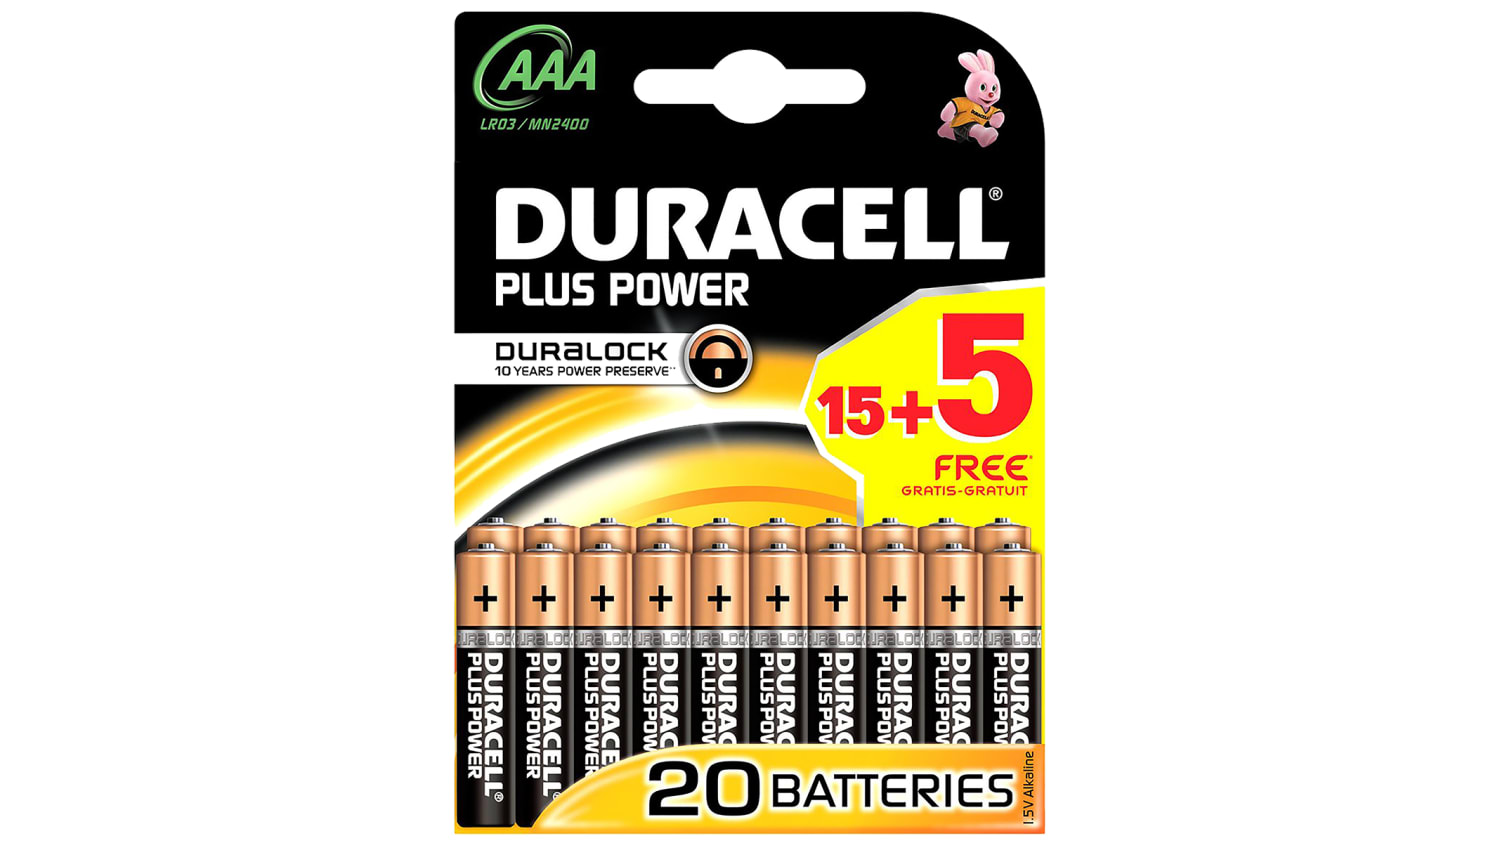 Duracell Aaa Battery Price Philippines